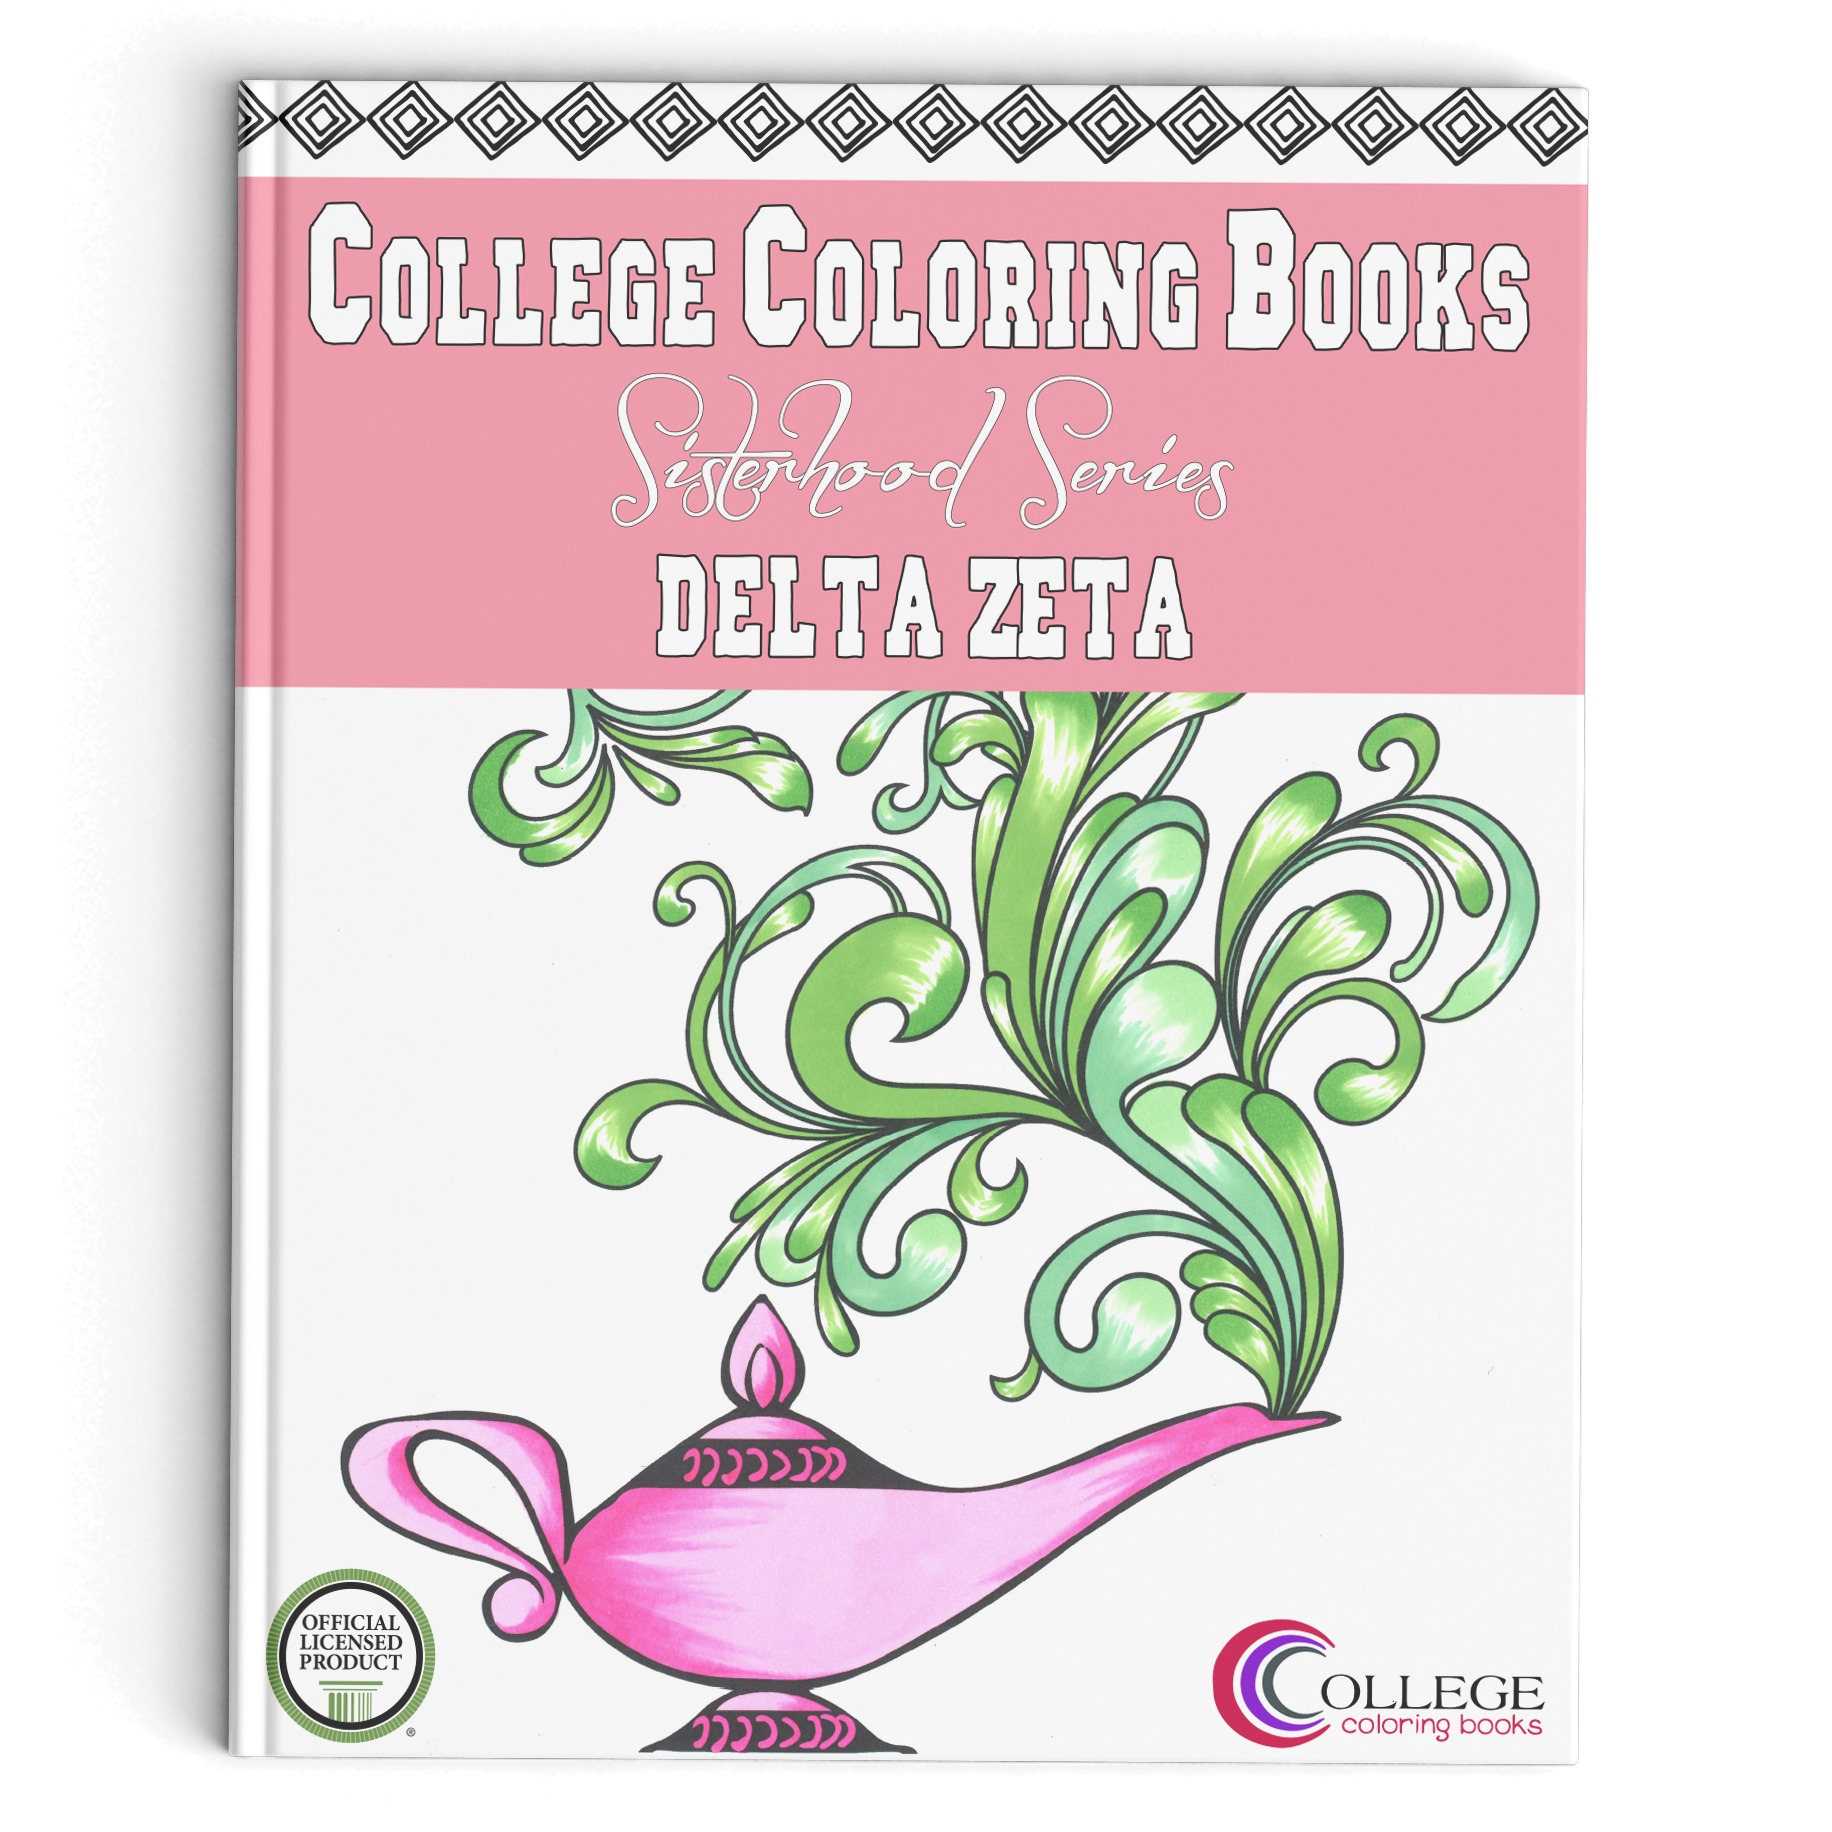 ToothFairy likewise Airplane Coloring Pages To Print besides  as well advanced coloring pages for adults printable additionally  together with 2 88 besides  further  furthermore Stroll 747 together with Adult Dental Coloring Pages 02 besides . on delta coloring pages for adults